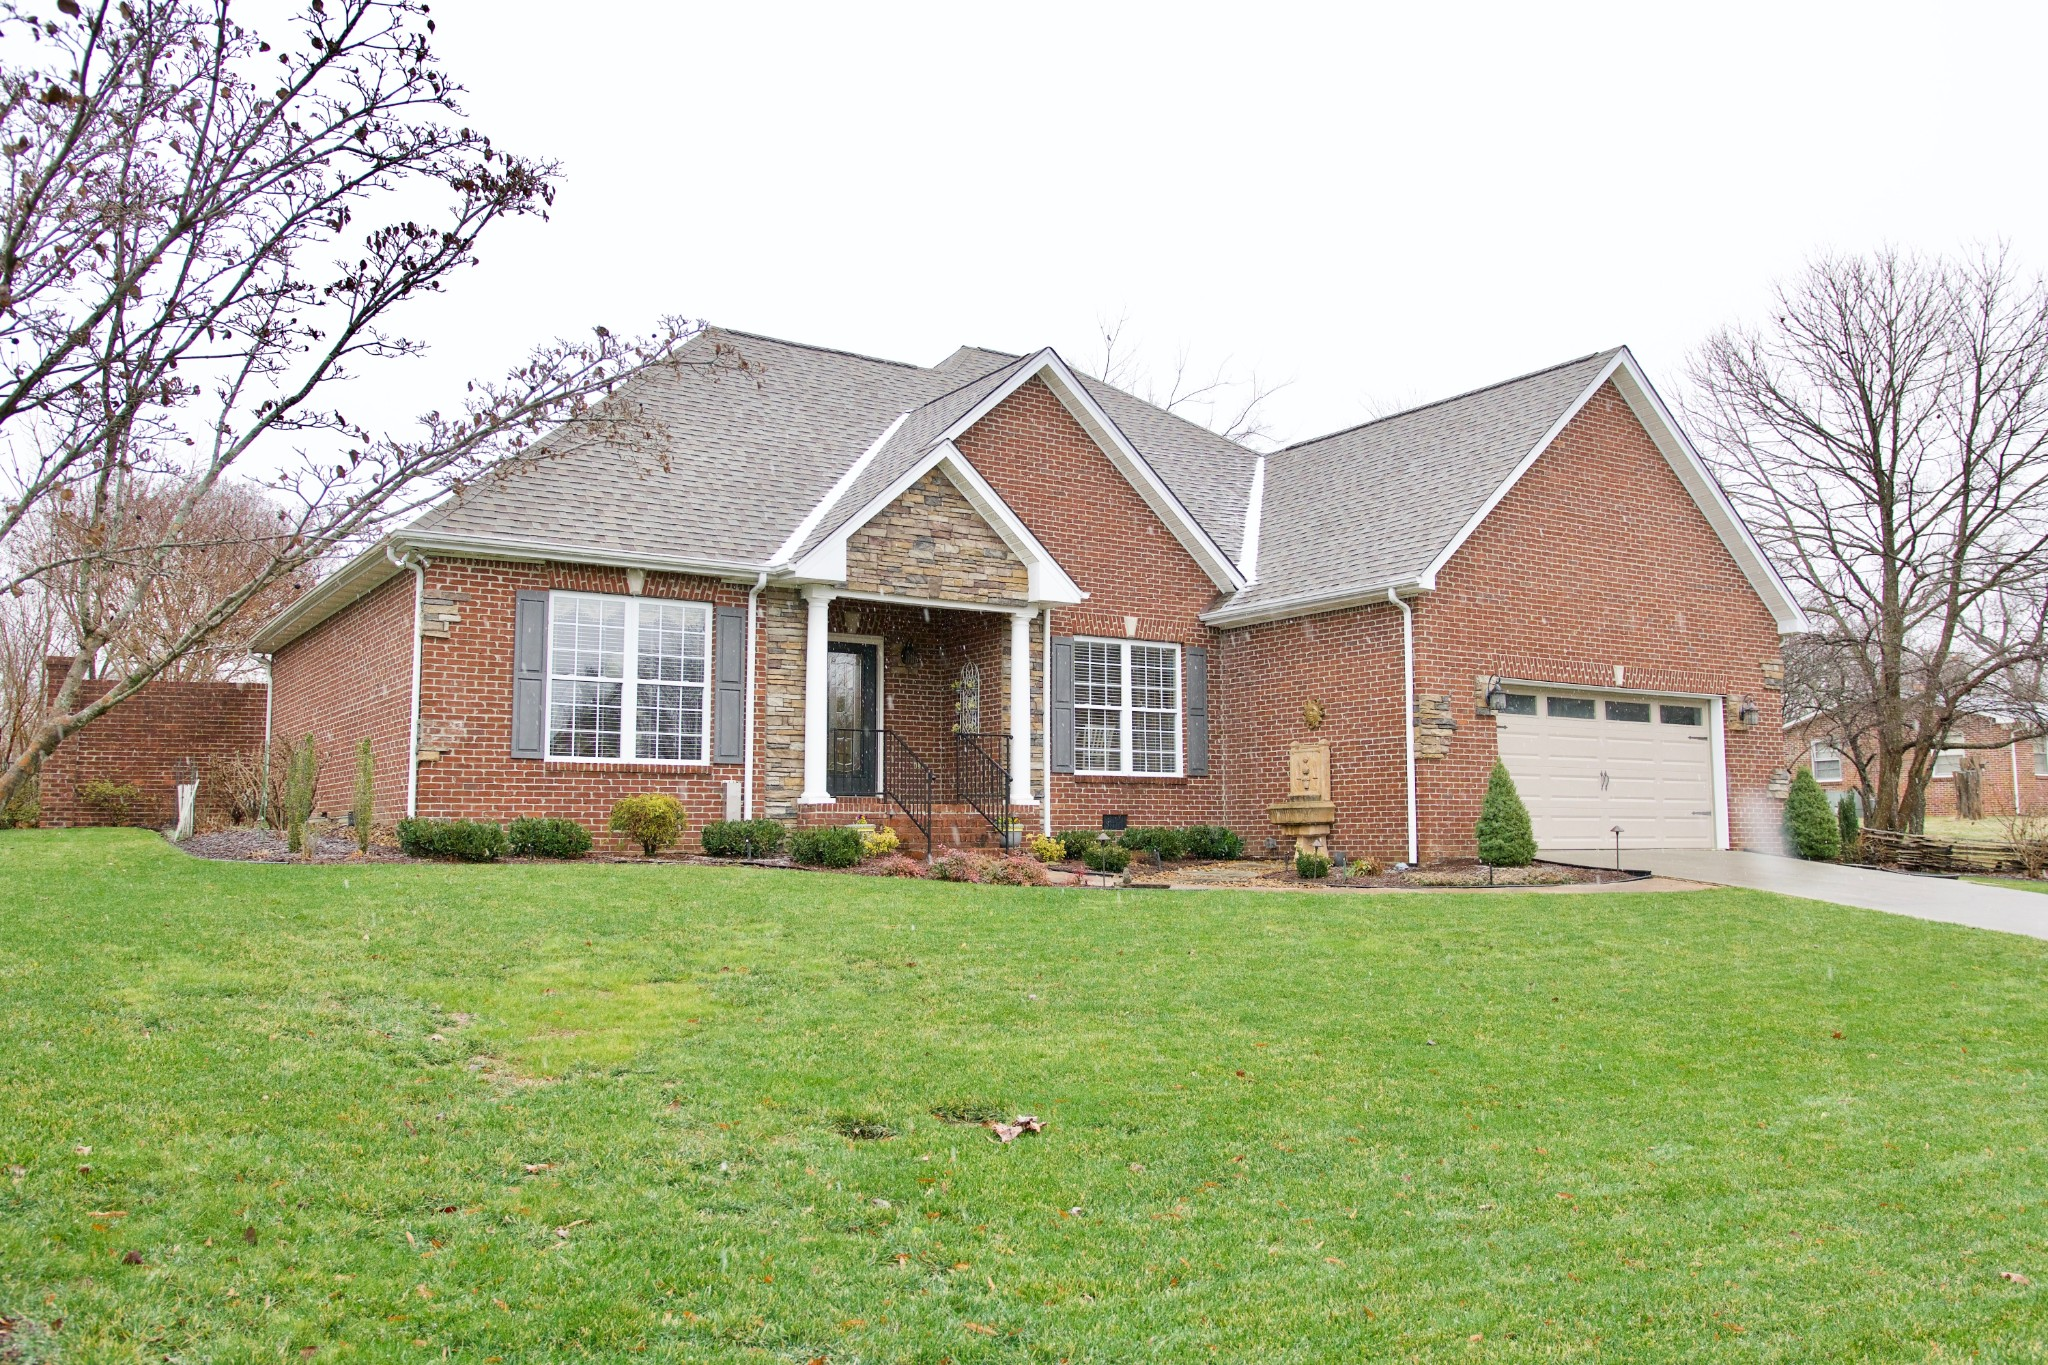 1303 Buckingham Pl, Cookeville, TN 38501 - Cookeville, TN real estate listing